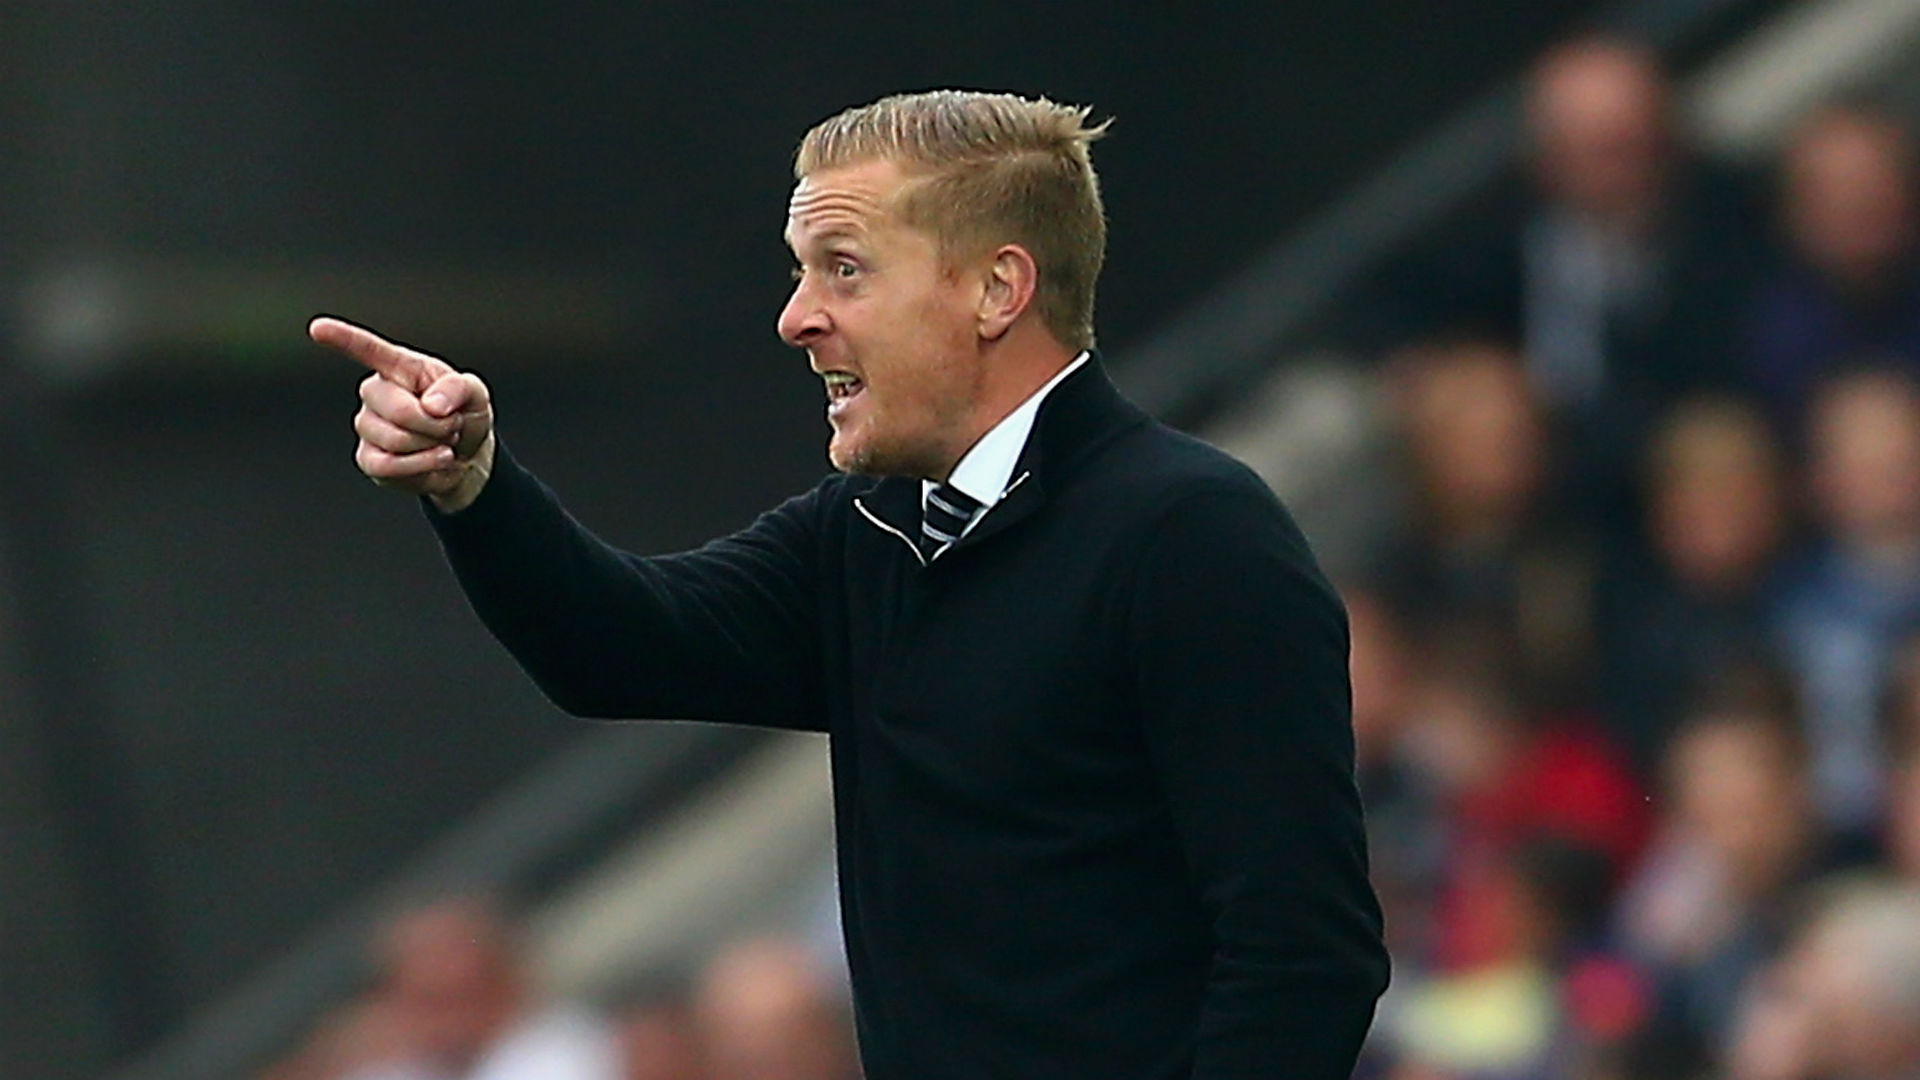 Garry Monk tells talkSPORT he didn't 'align' with Leeds United's new ownership